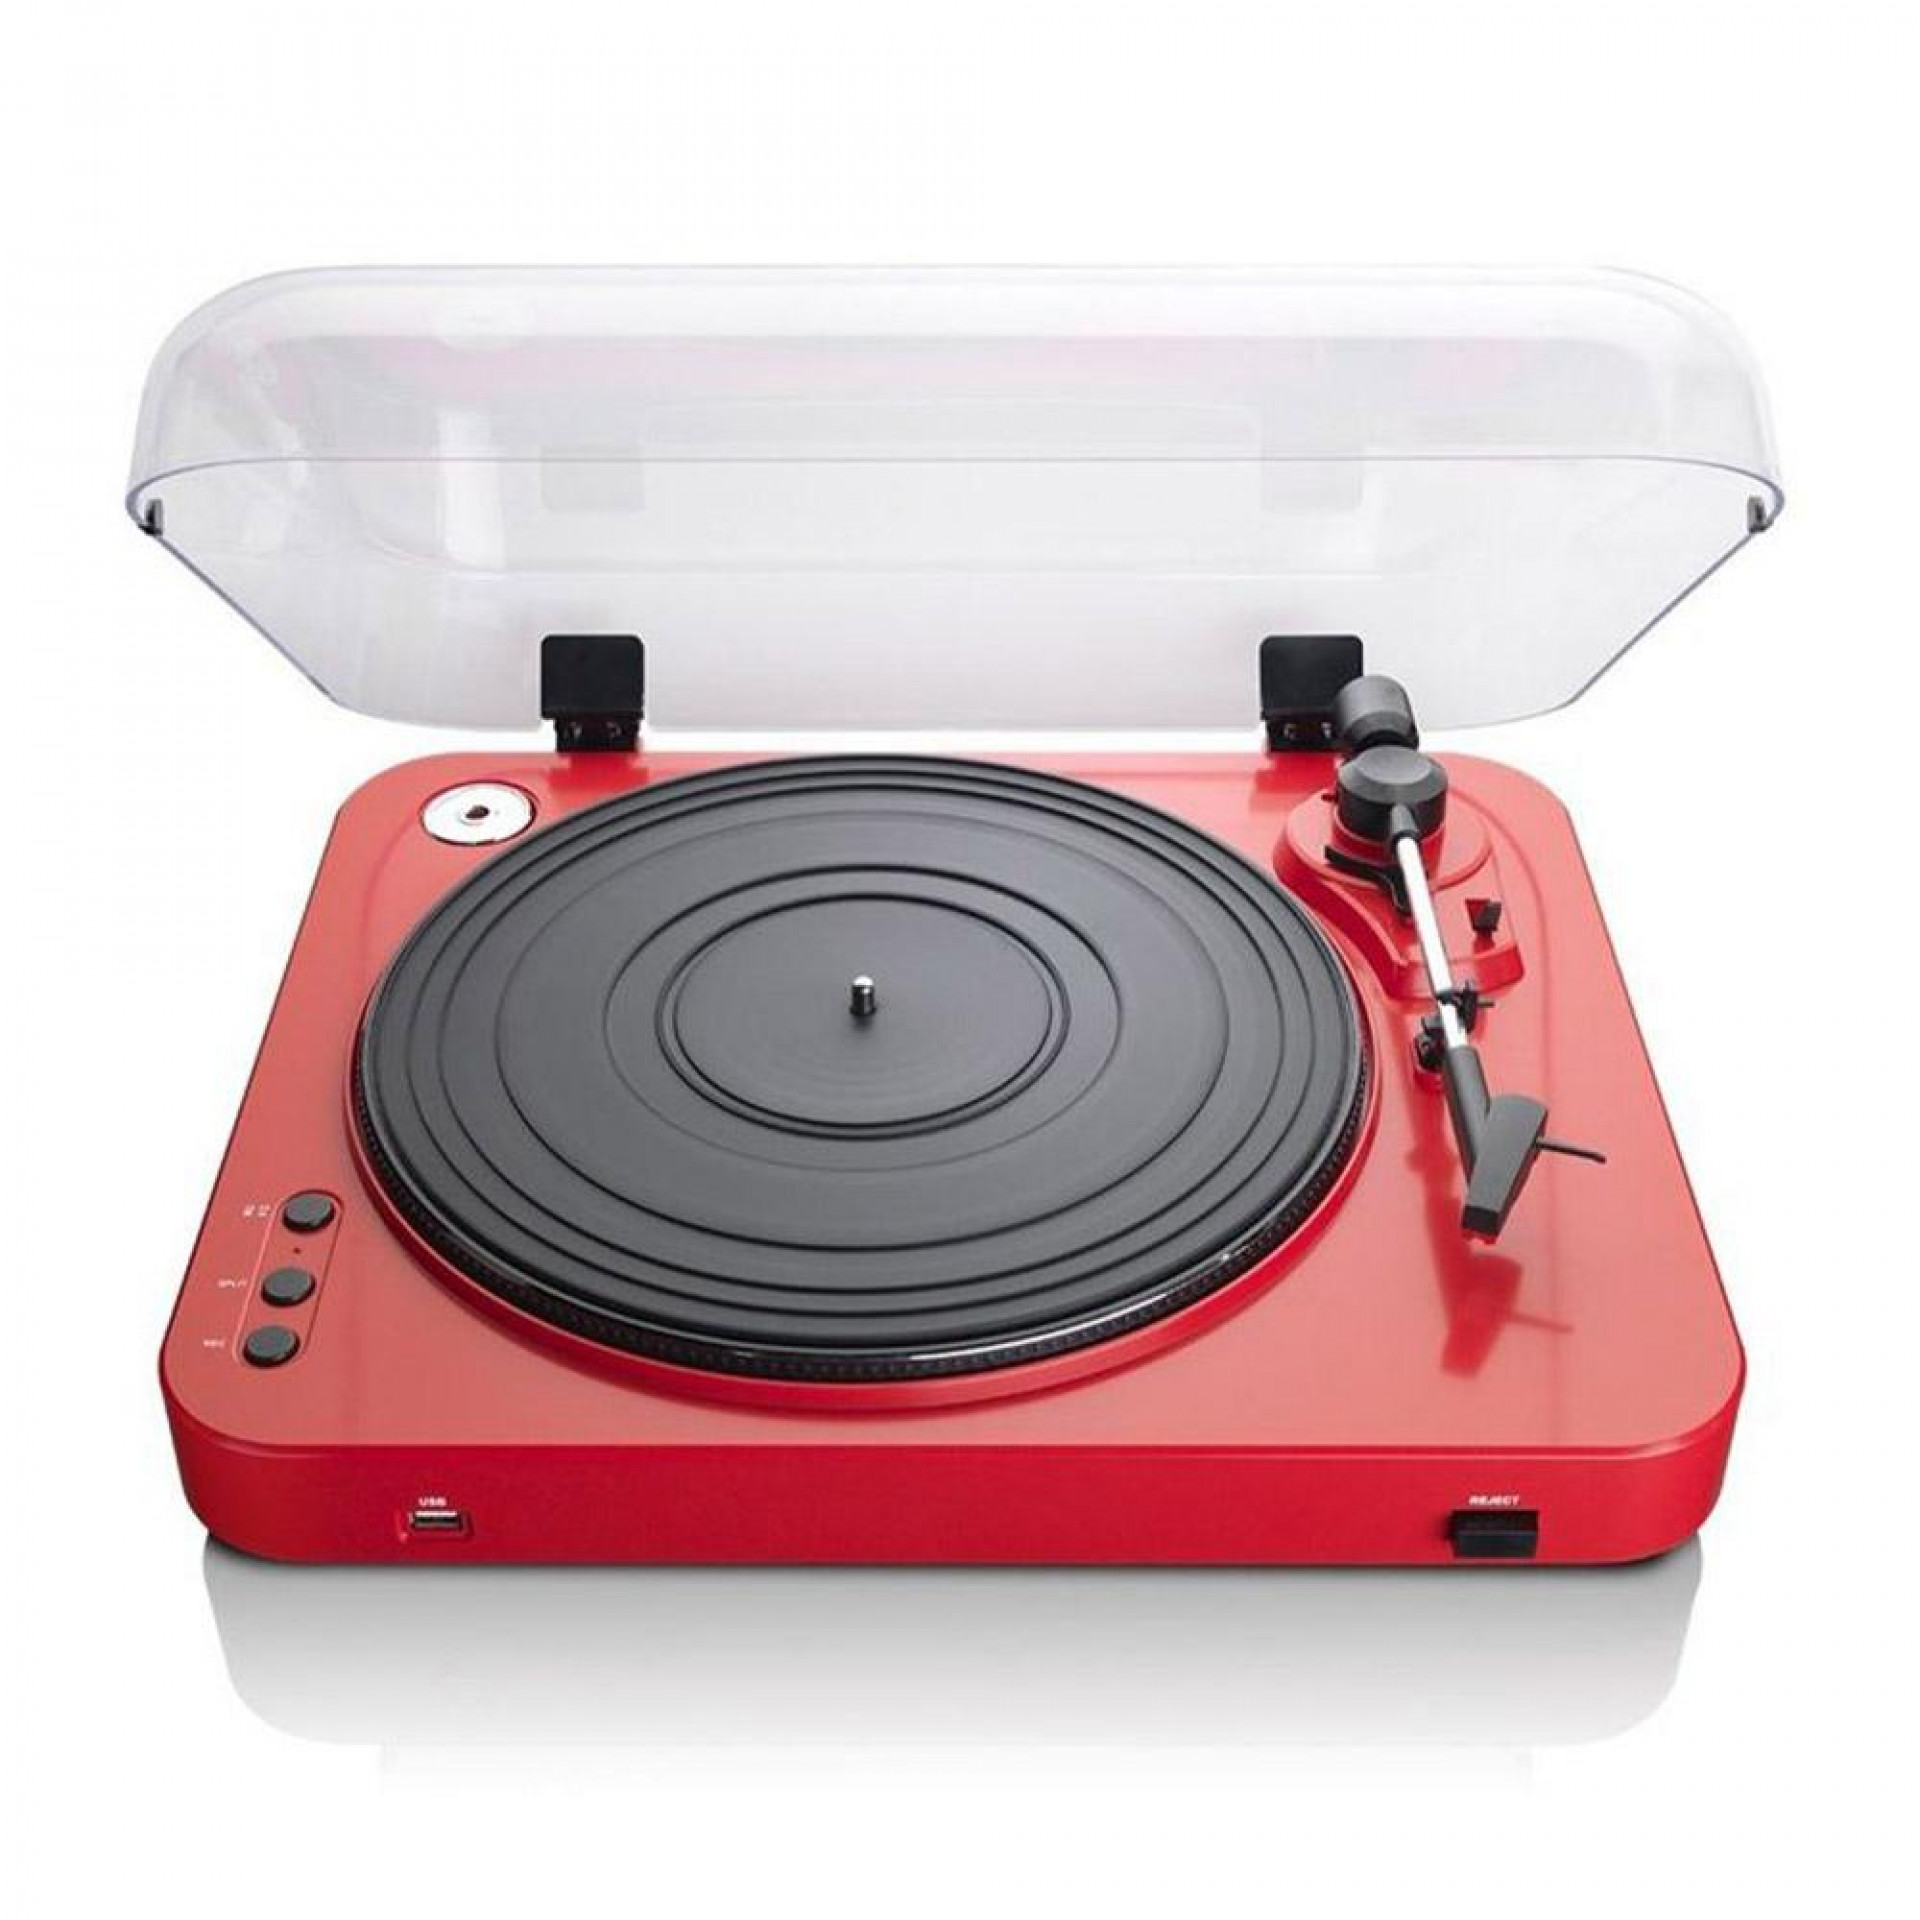 Lenco L-85 Turntable w/ mechanical arm lift and autostop return Red